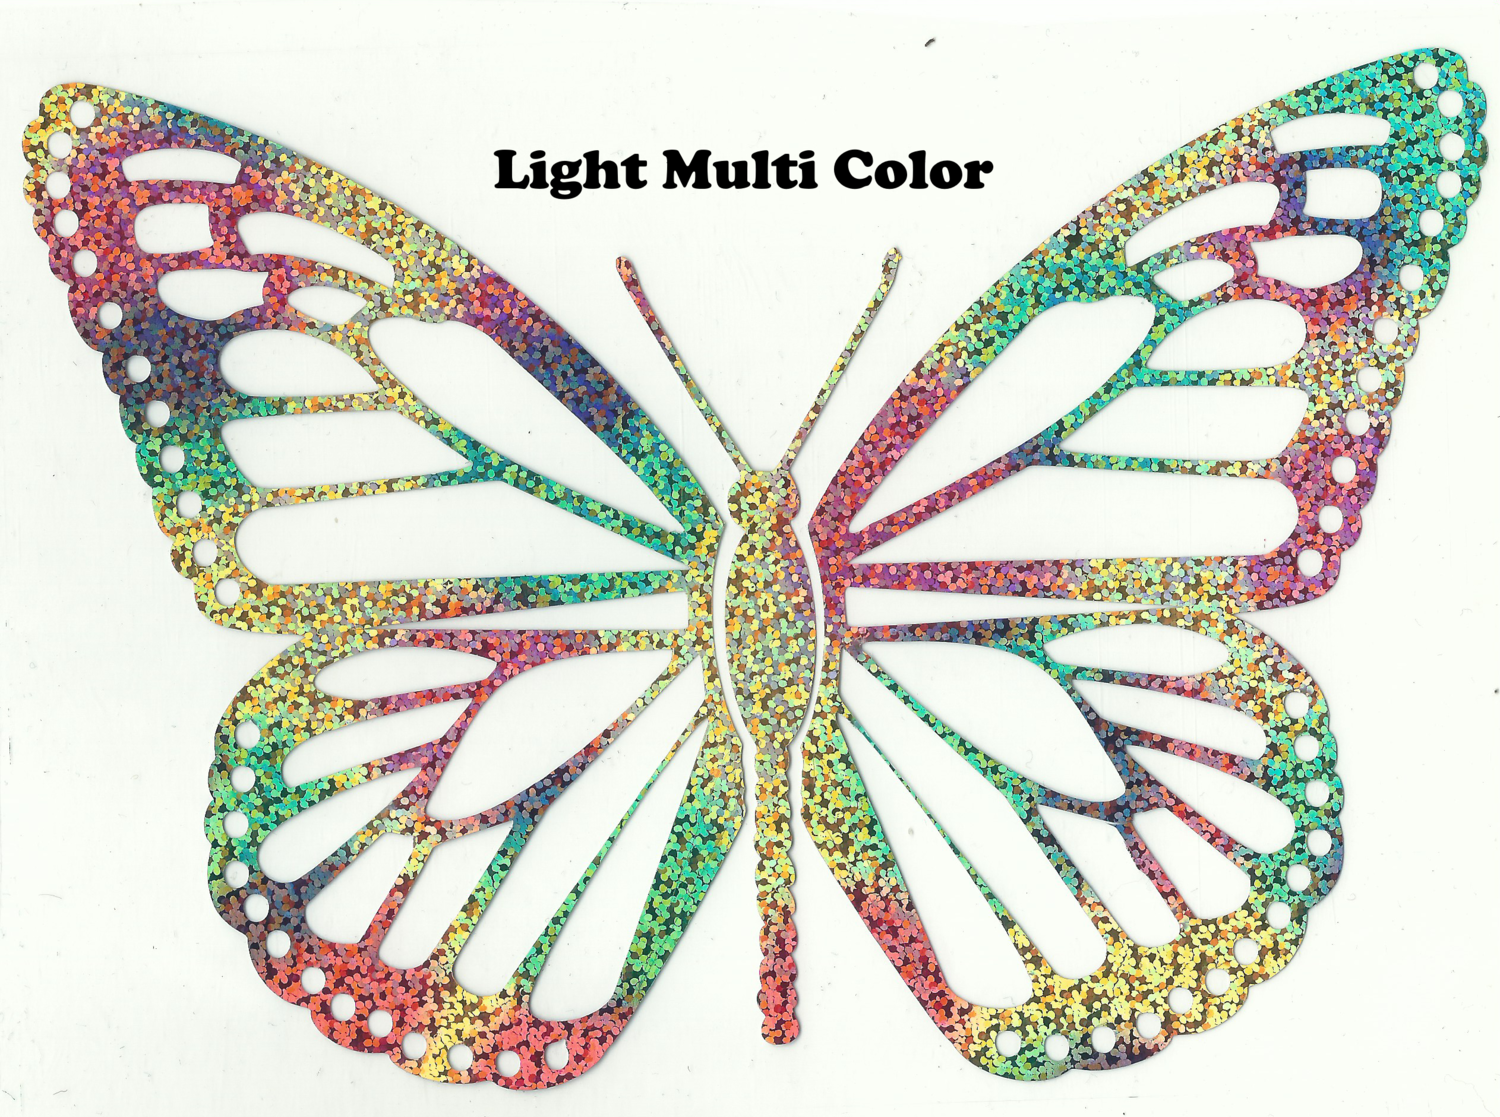 Hologram Metallic Multi Color Butterfly Design Heat Transfer Vinyl ready to put on T-Shirt